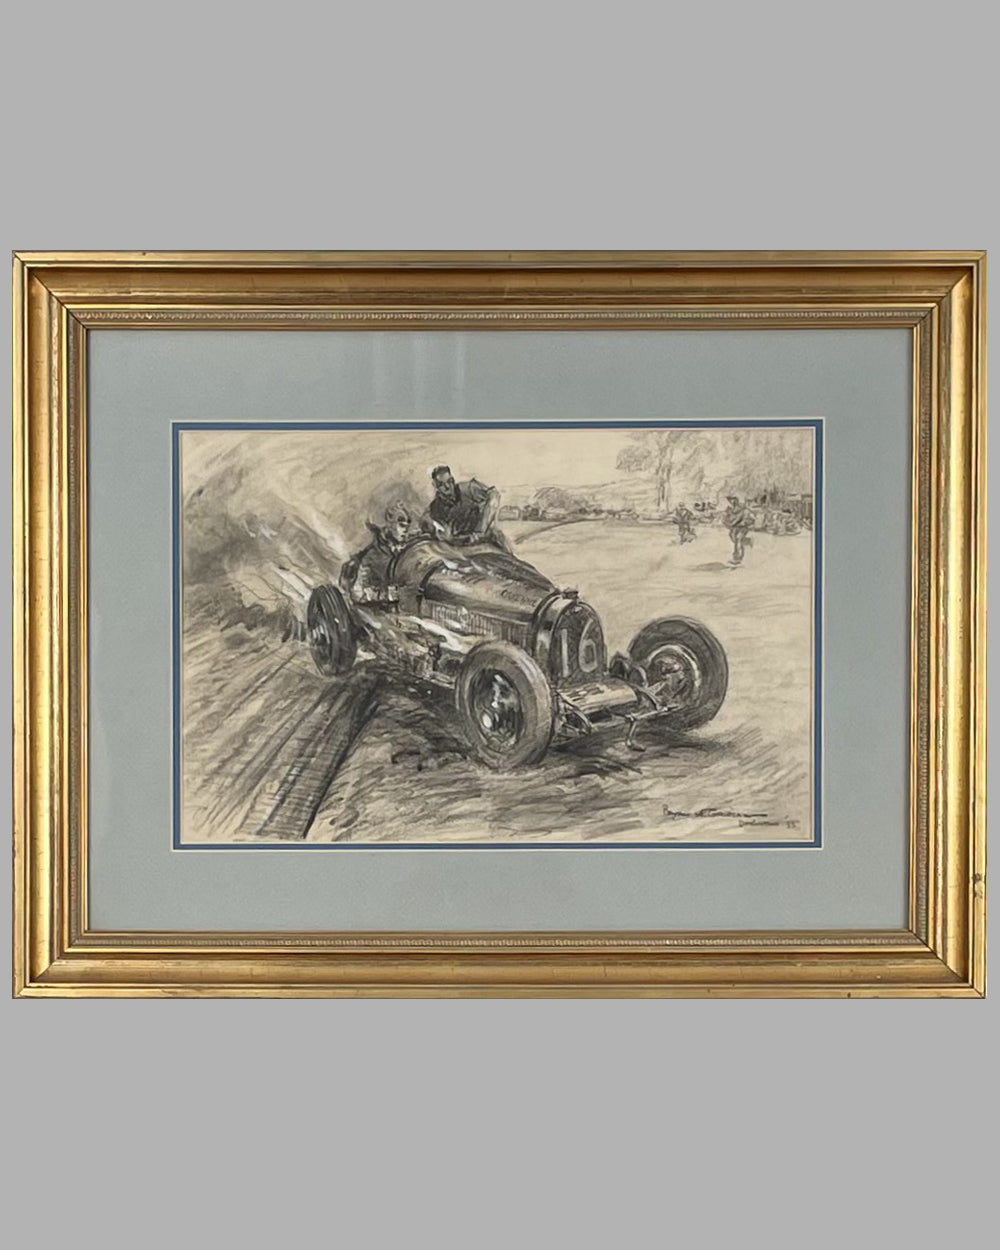 Bugatti charcoal and watercolor on board by Bryan de Grineau, 1933